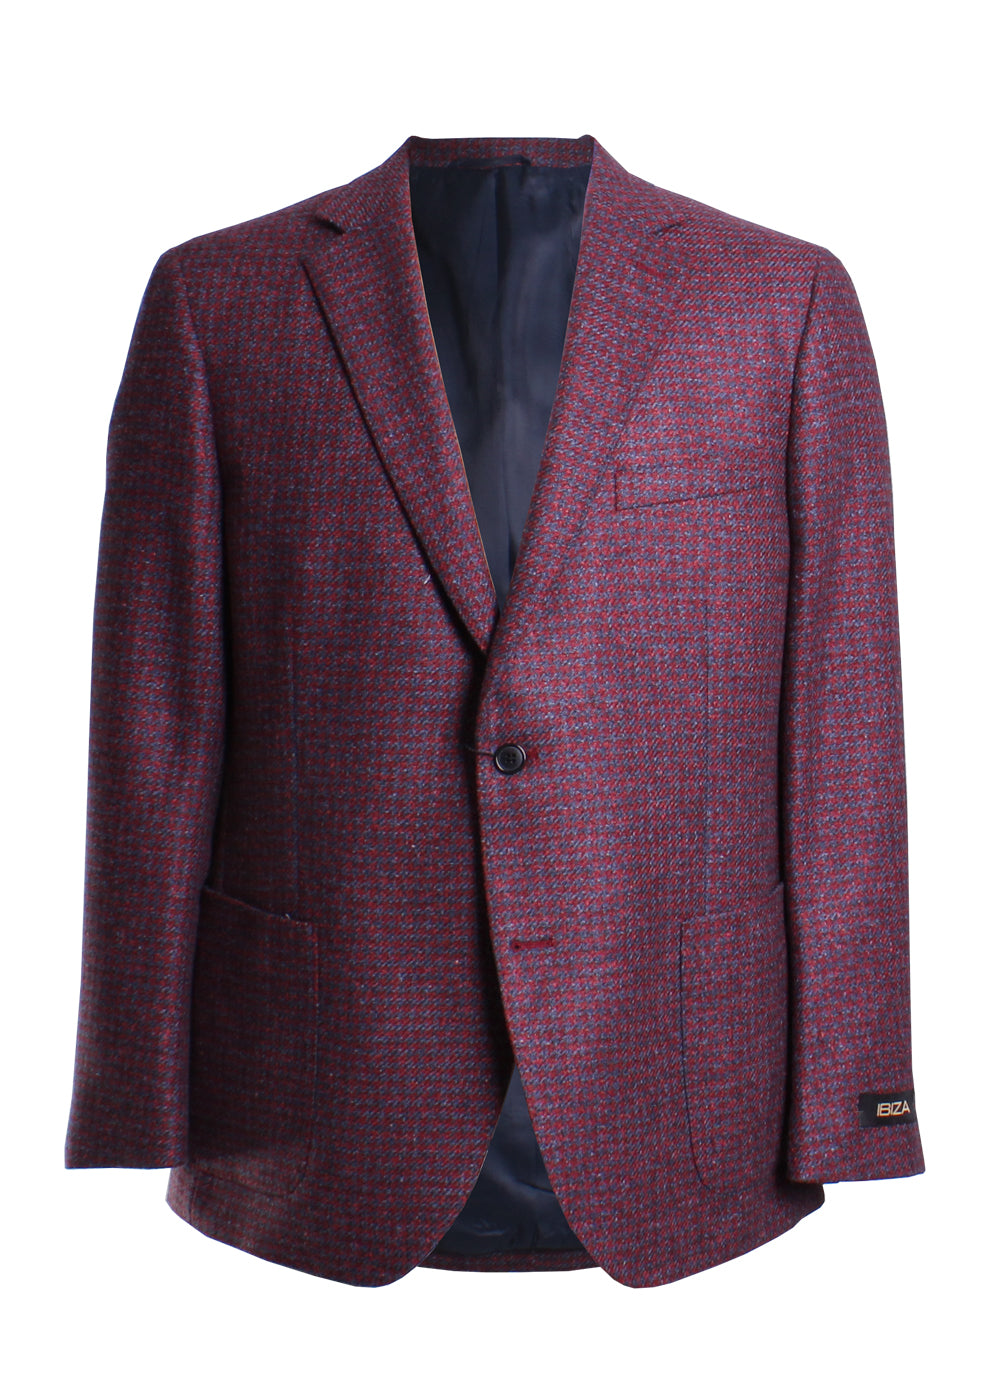 Ibiza Campino Houndstooth Sport Coat in Red